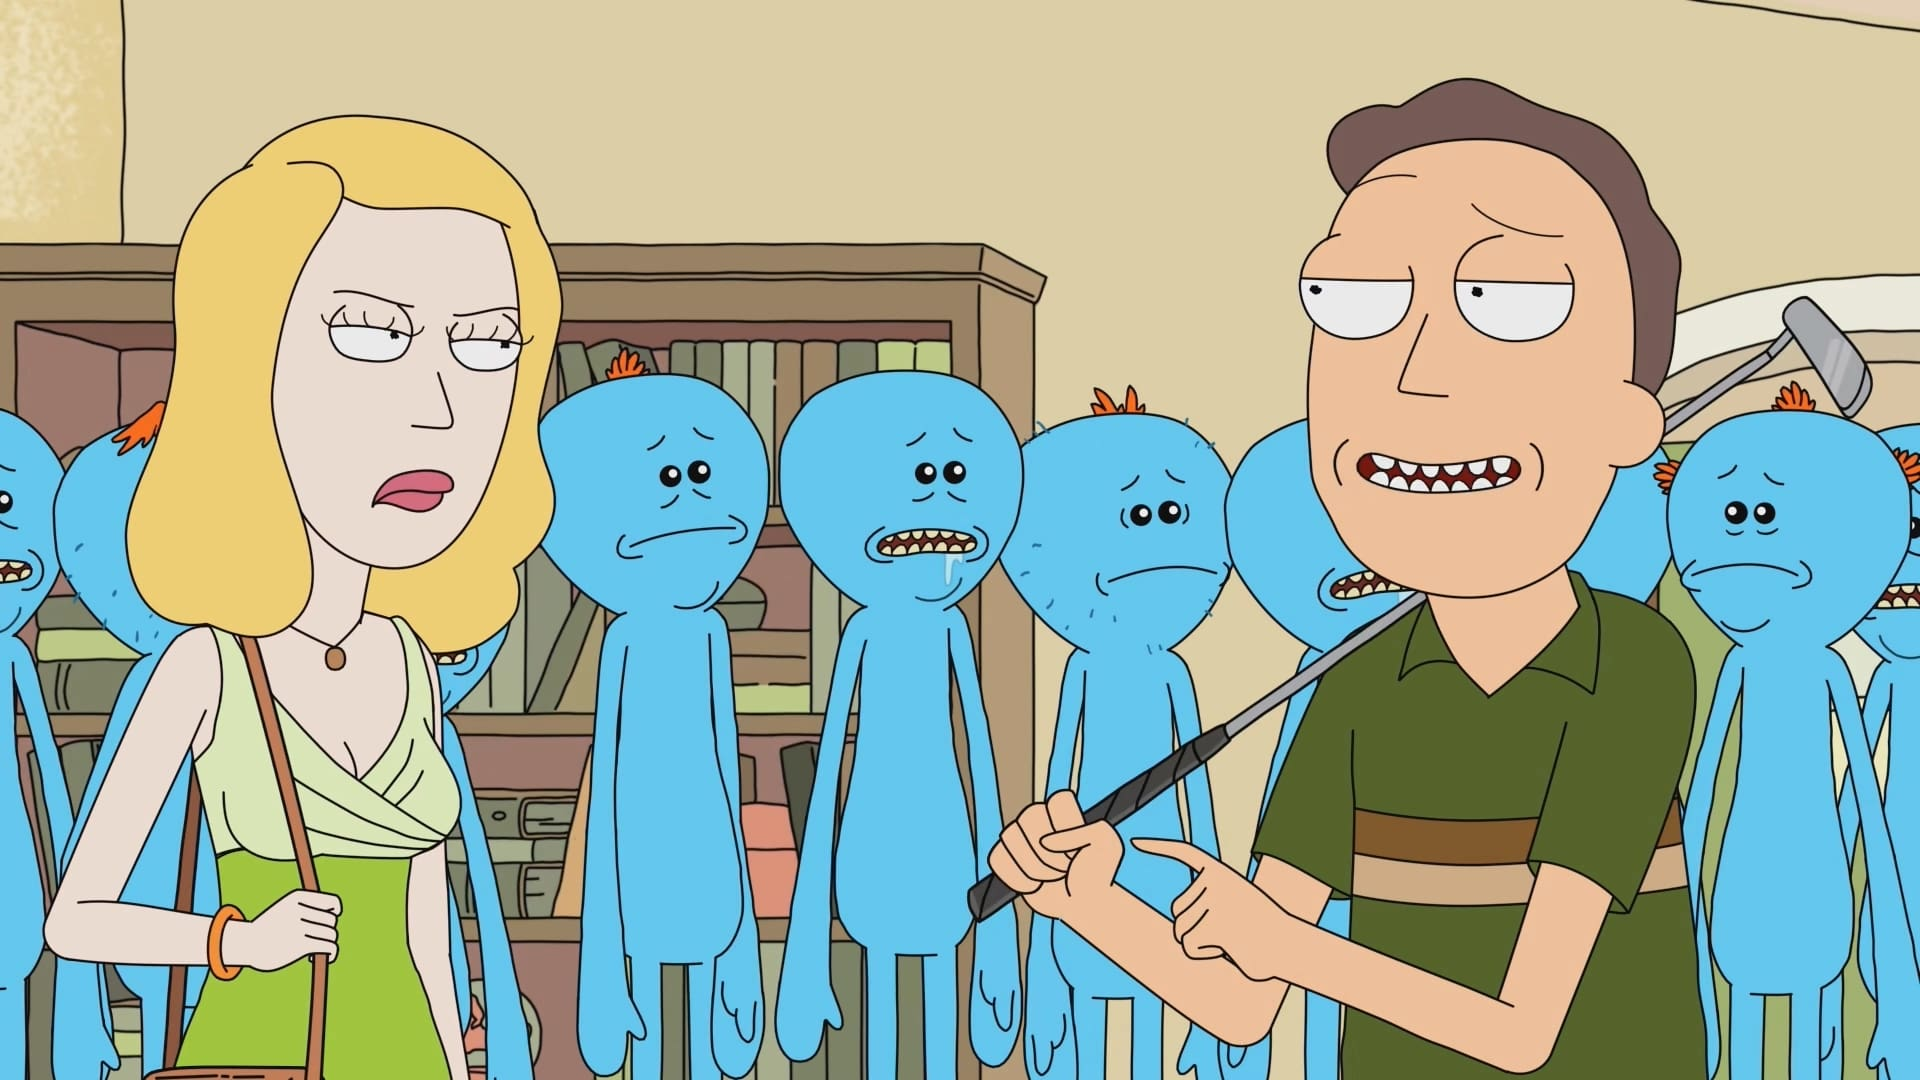 Rick and Morty: Season 1 Episode 5 - Watch Free TV & Movies